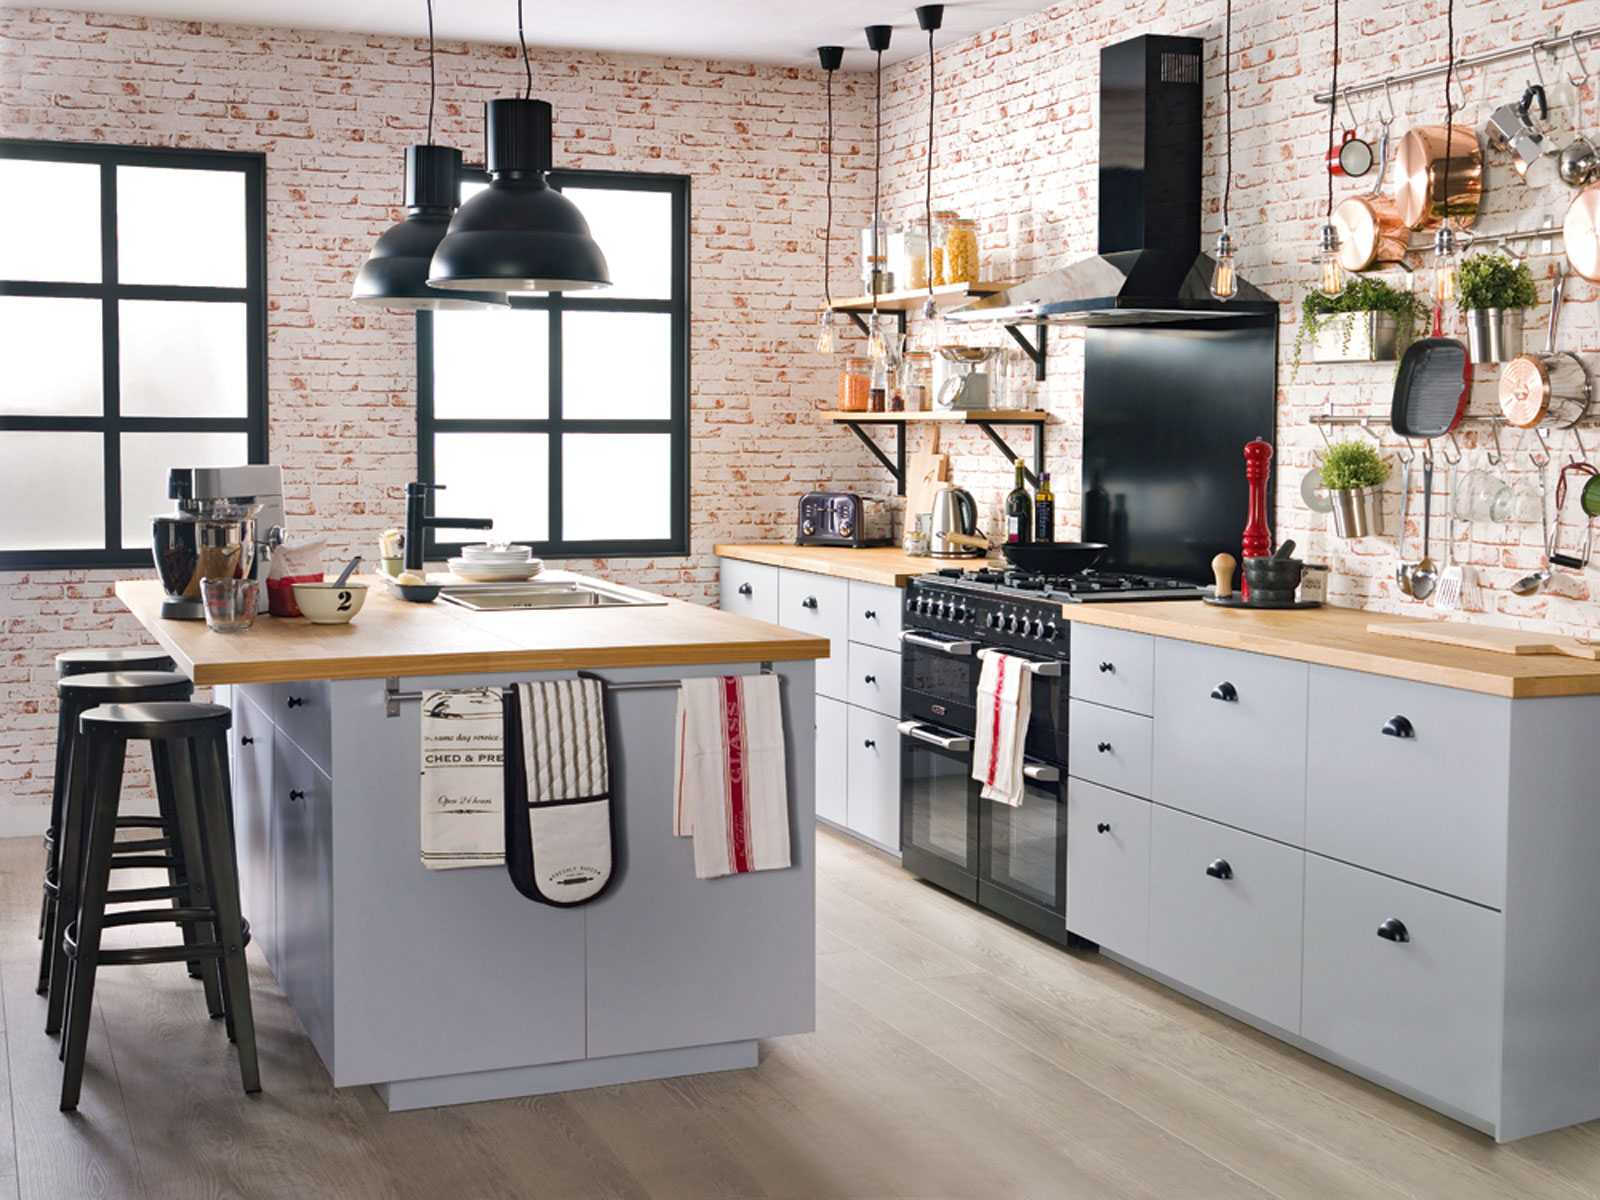 Captivating industrial kitchen concepts-5